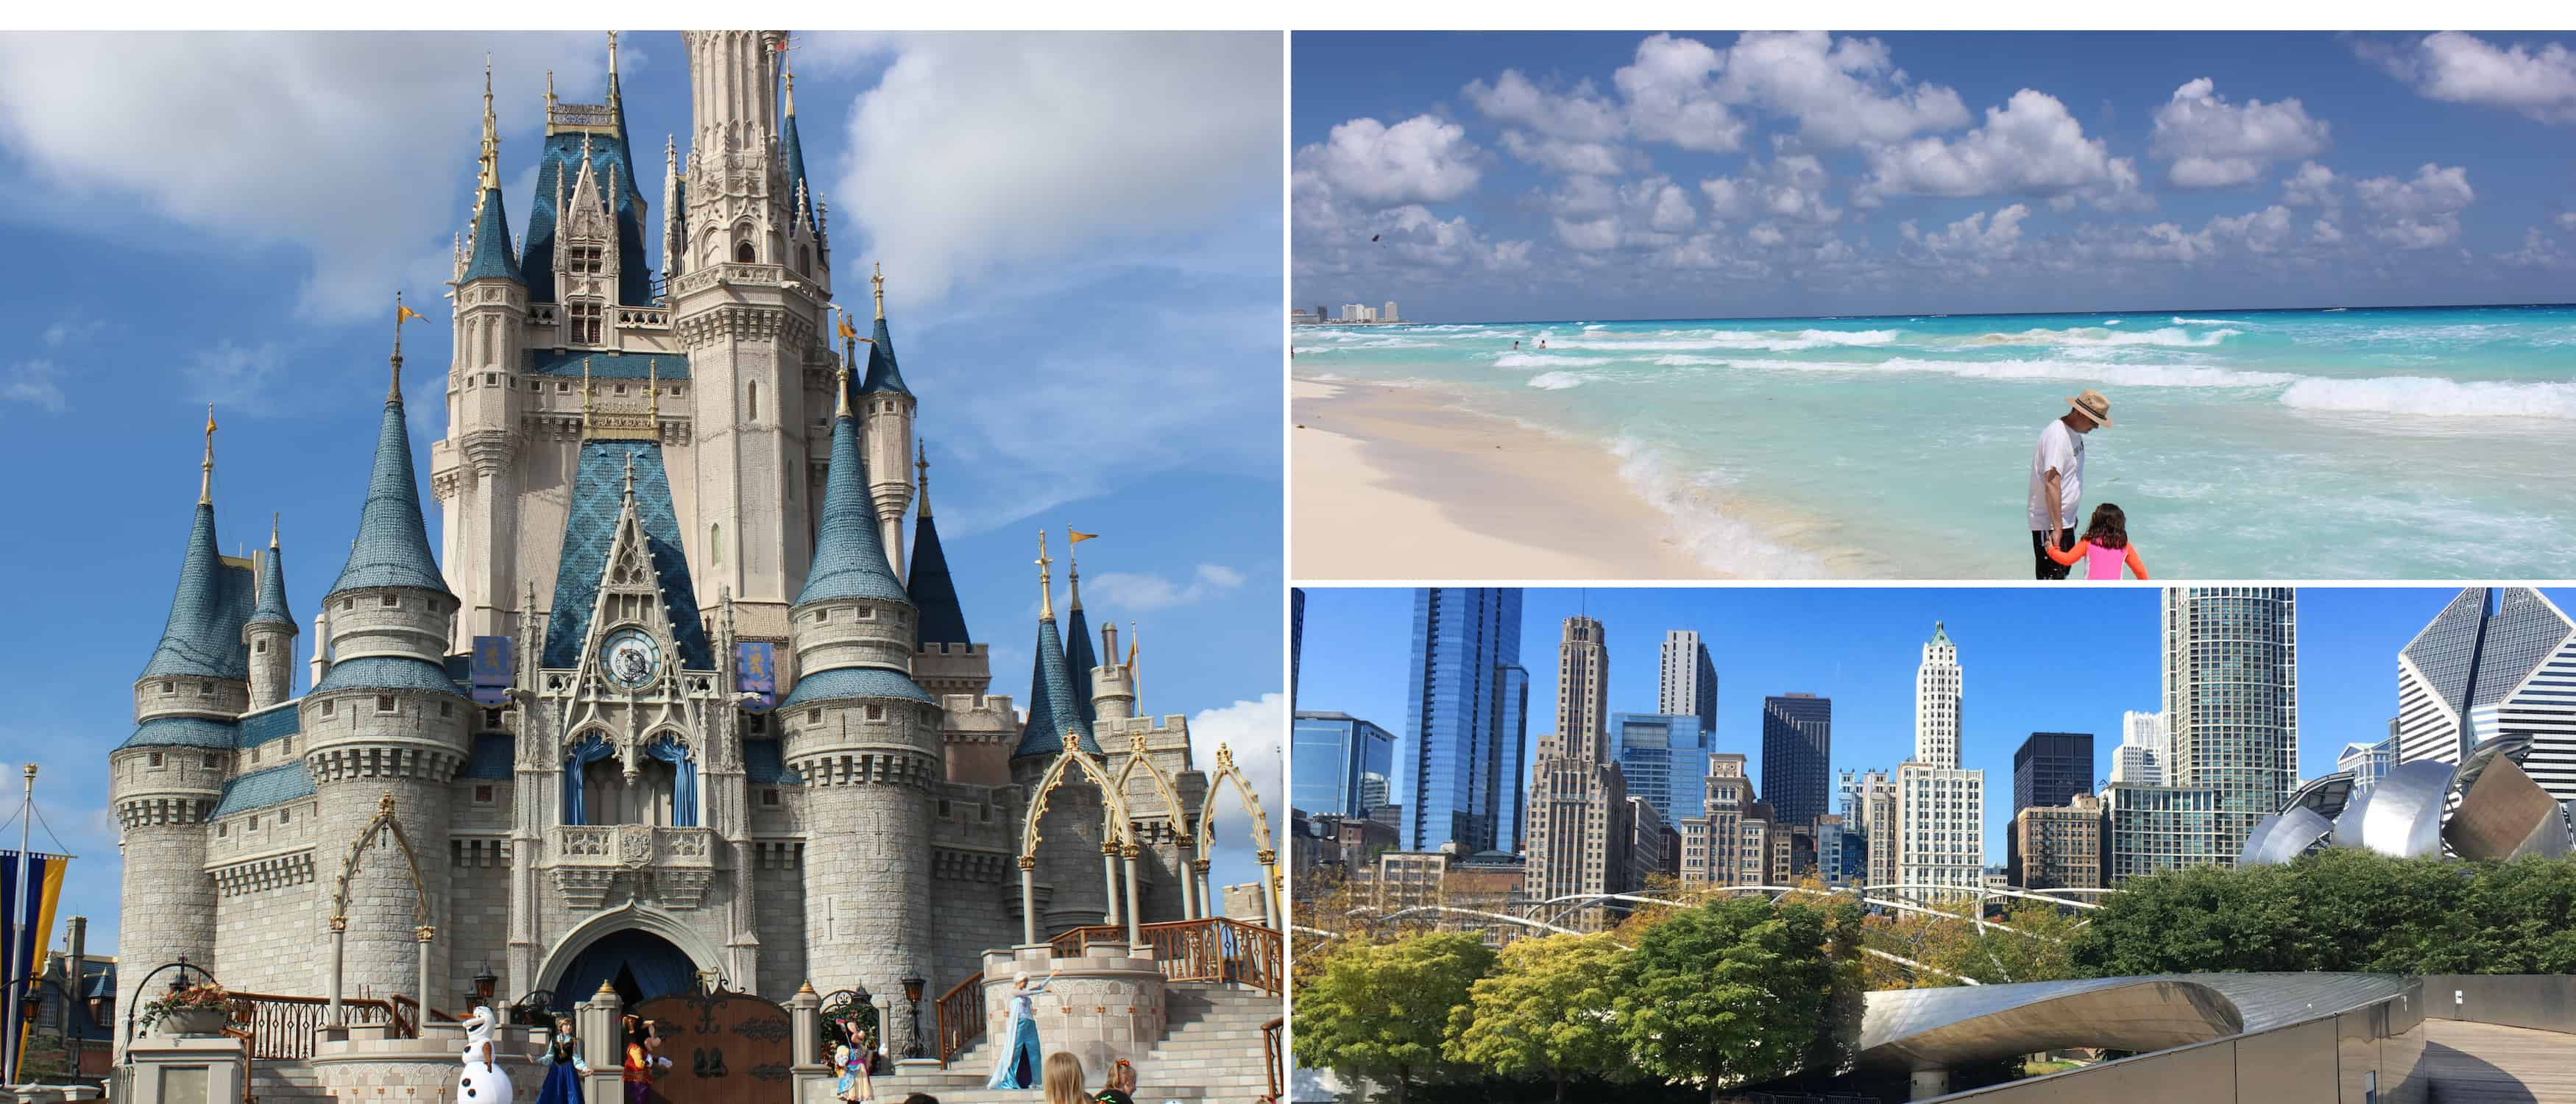 Disney castle, Cancun beach and downtown Chicago